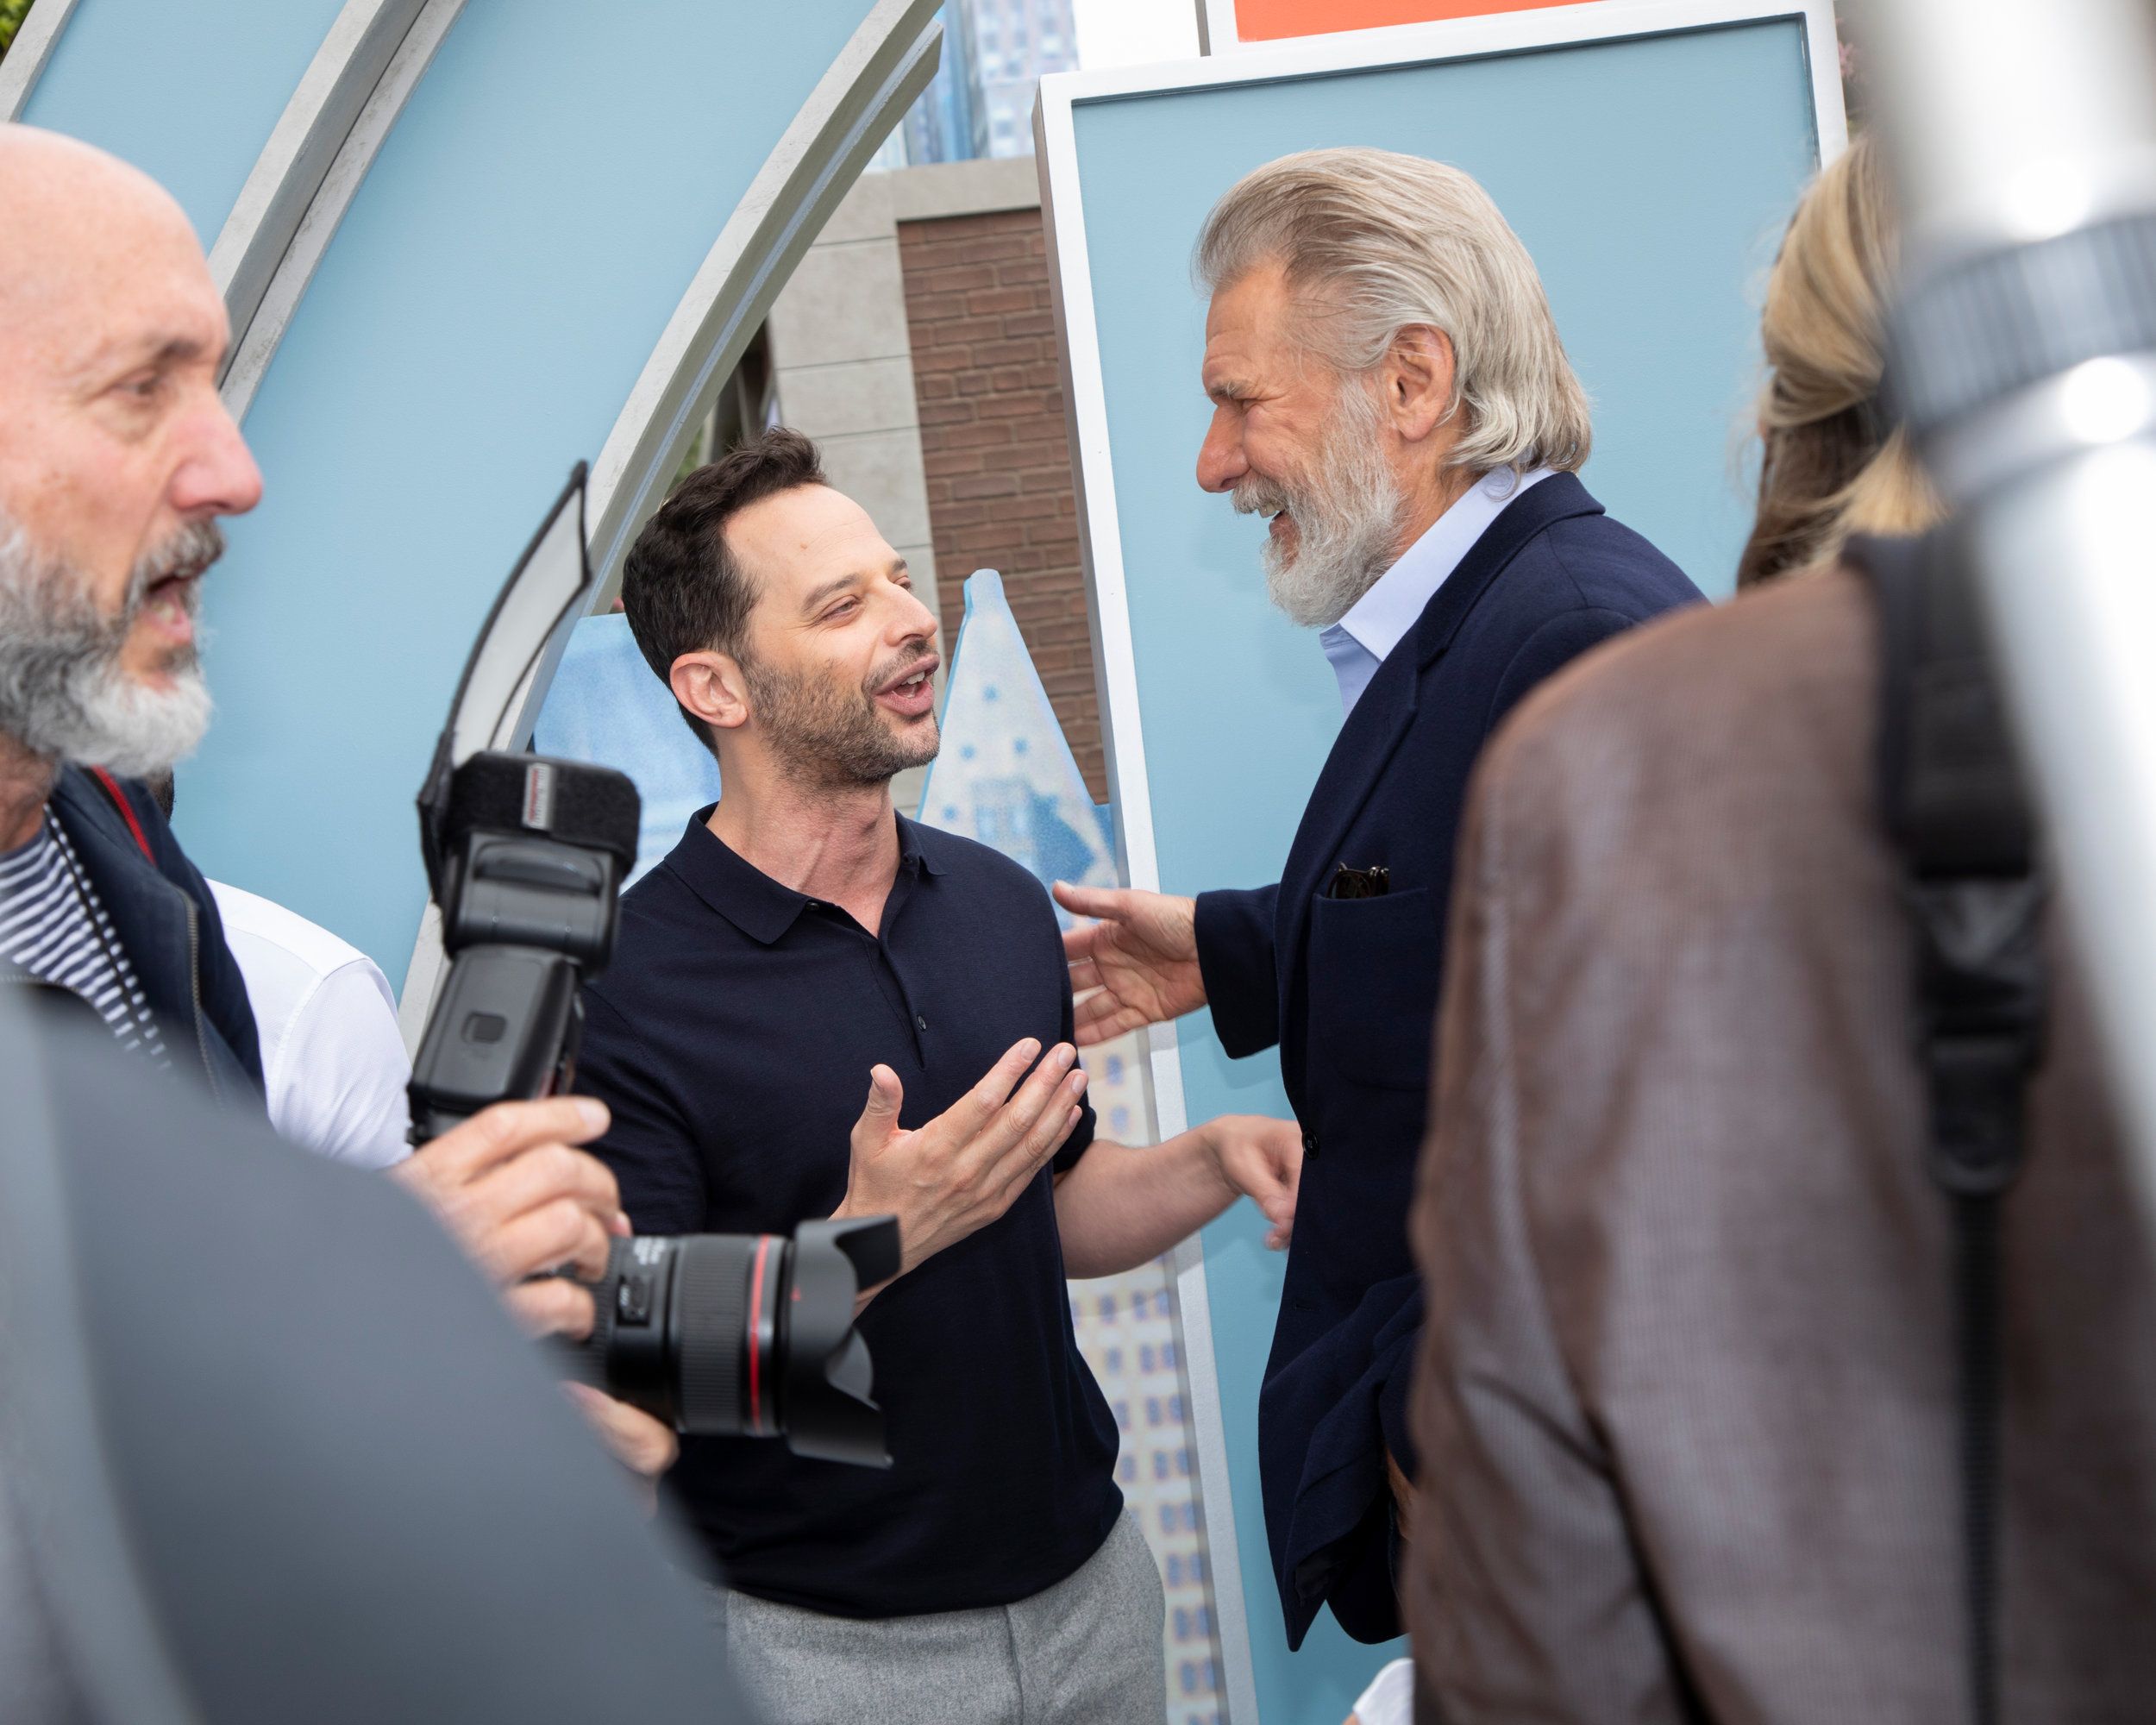 Nick Kroll and Harrison Ford at the Secret Life of Pets 2: Premiere, at the Regency Village Theatre, for BFA